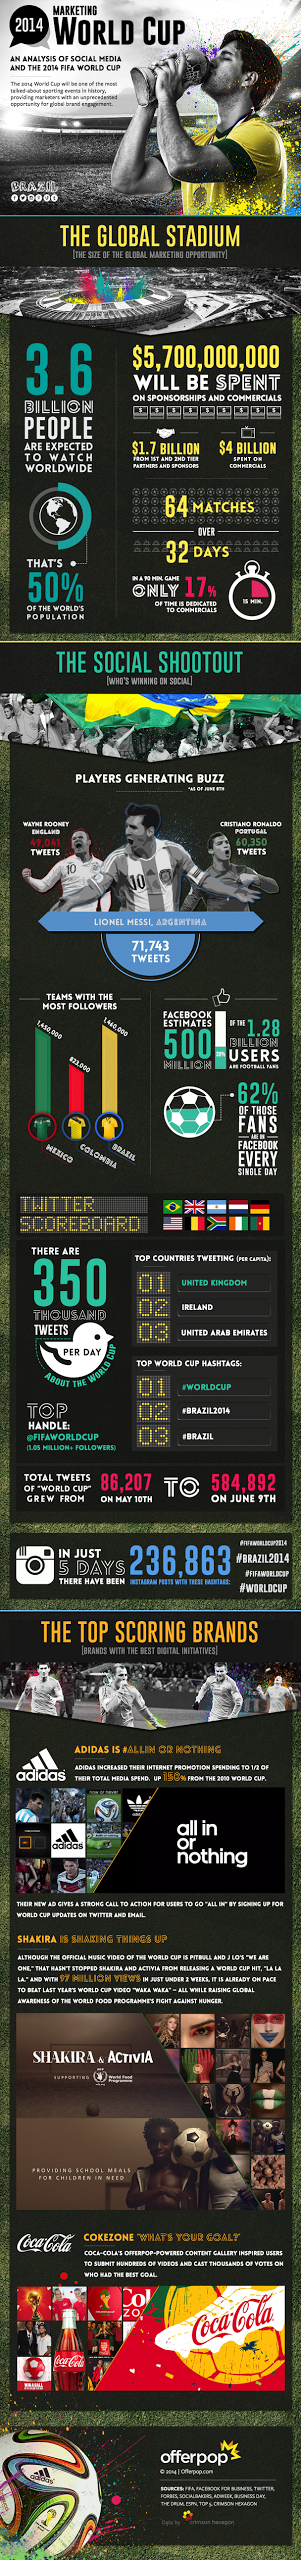 FIFA World Cup, World cup 2014, Football world cup, FIFA world cup social trends, world cup marketing, World cup brasil, World Cup Brasil 2014